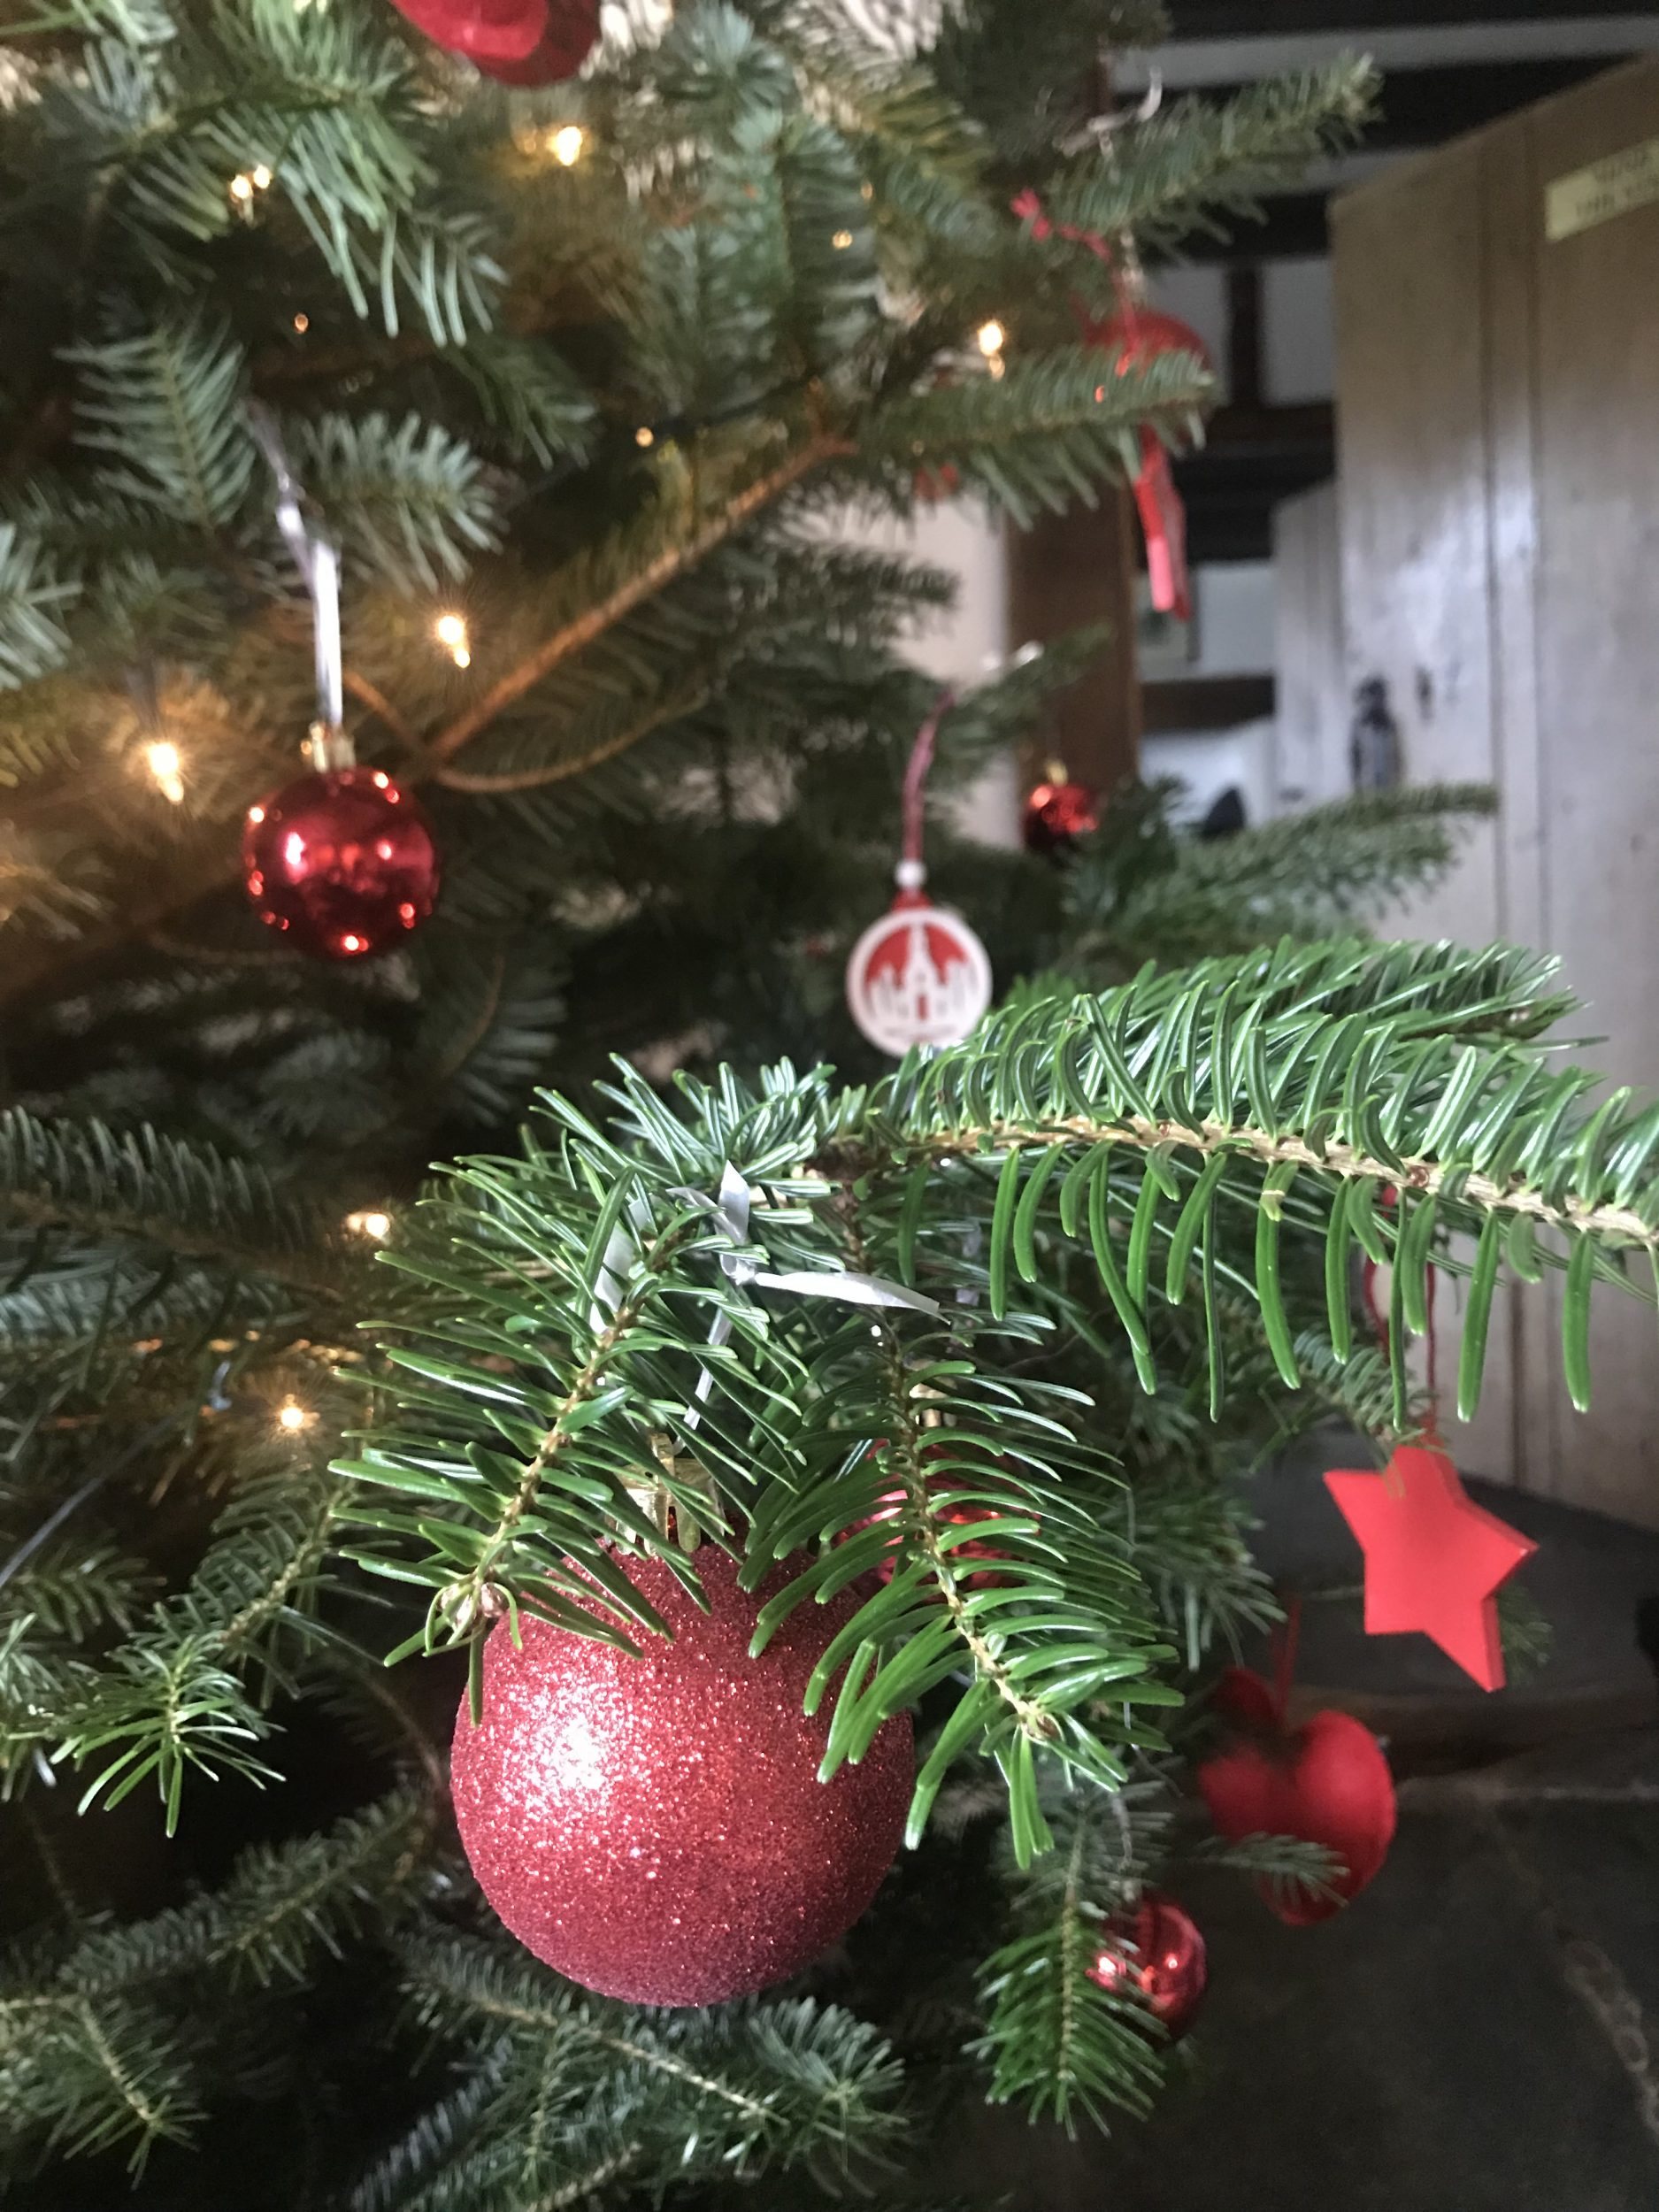 Christmas decorations in the Farmhouse